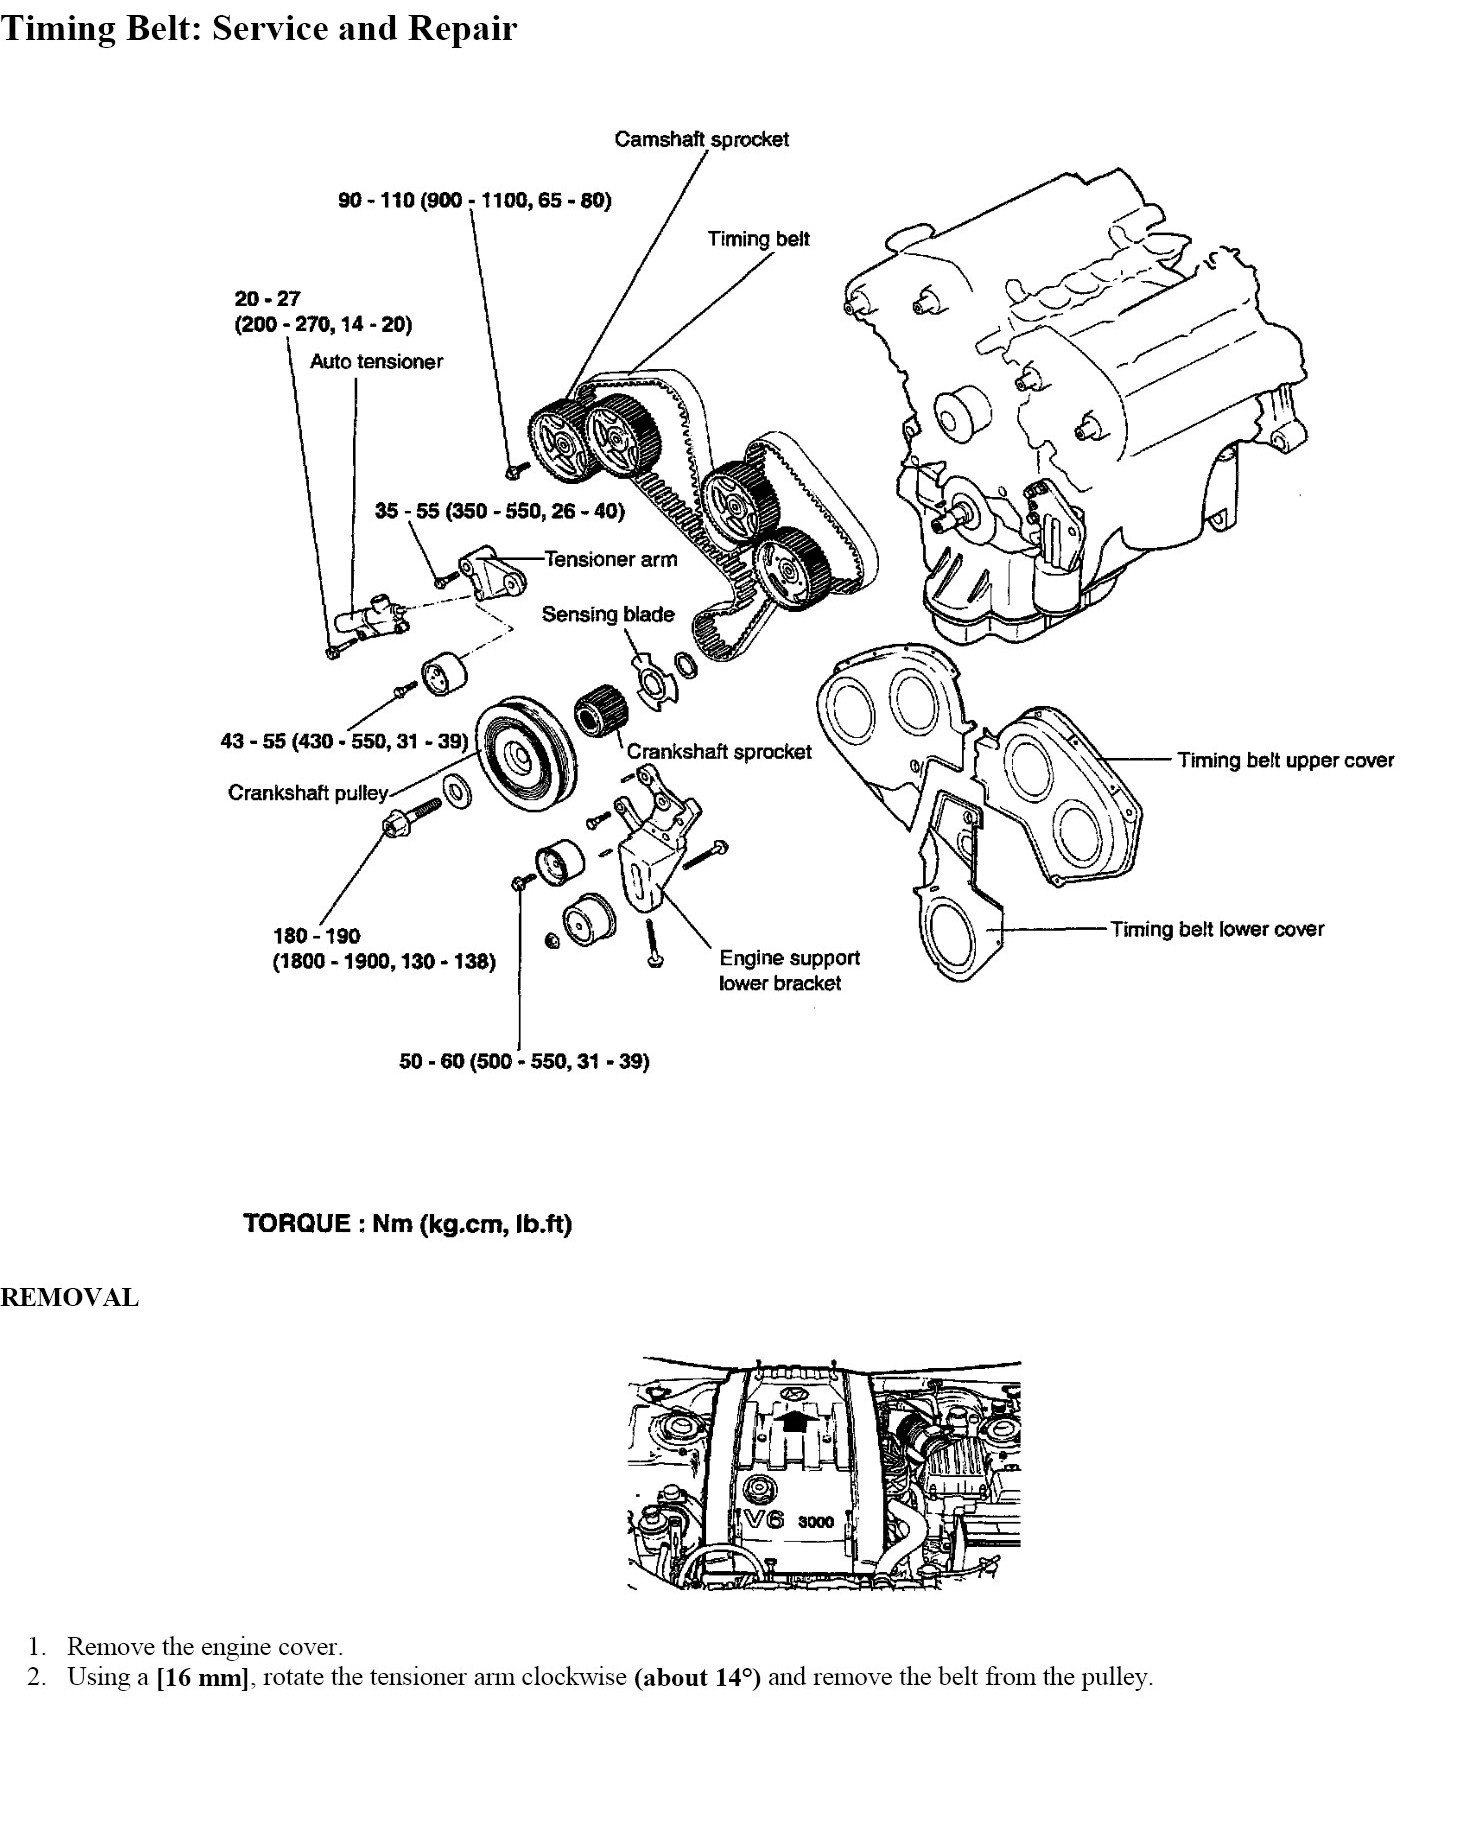 2001 hyundai xg300 fuse diagram html imageresizertool com Hyundai Accent  Engine Diagram 2001 Hyundai Sonata Engine Diagram